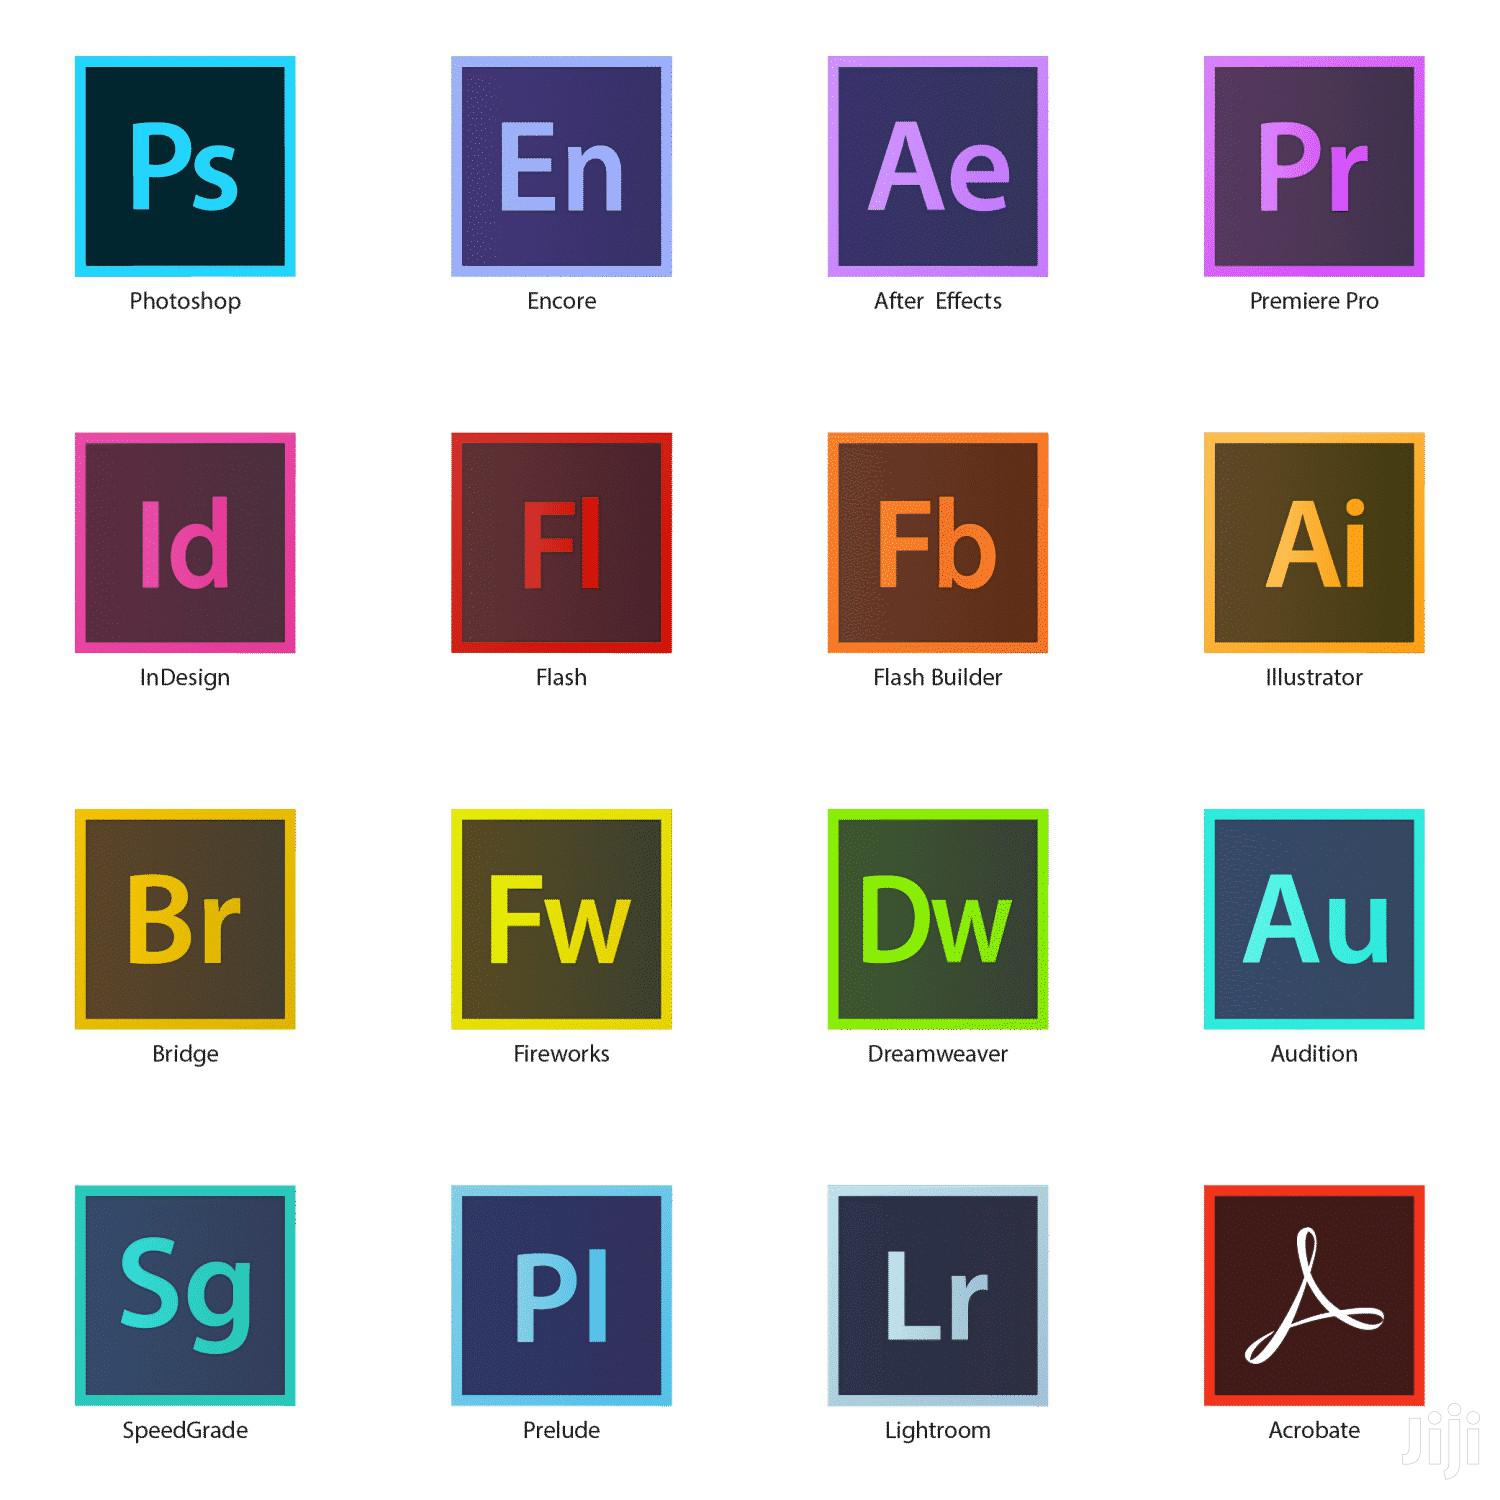 Adobe CC Master Collection 2020